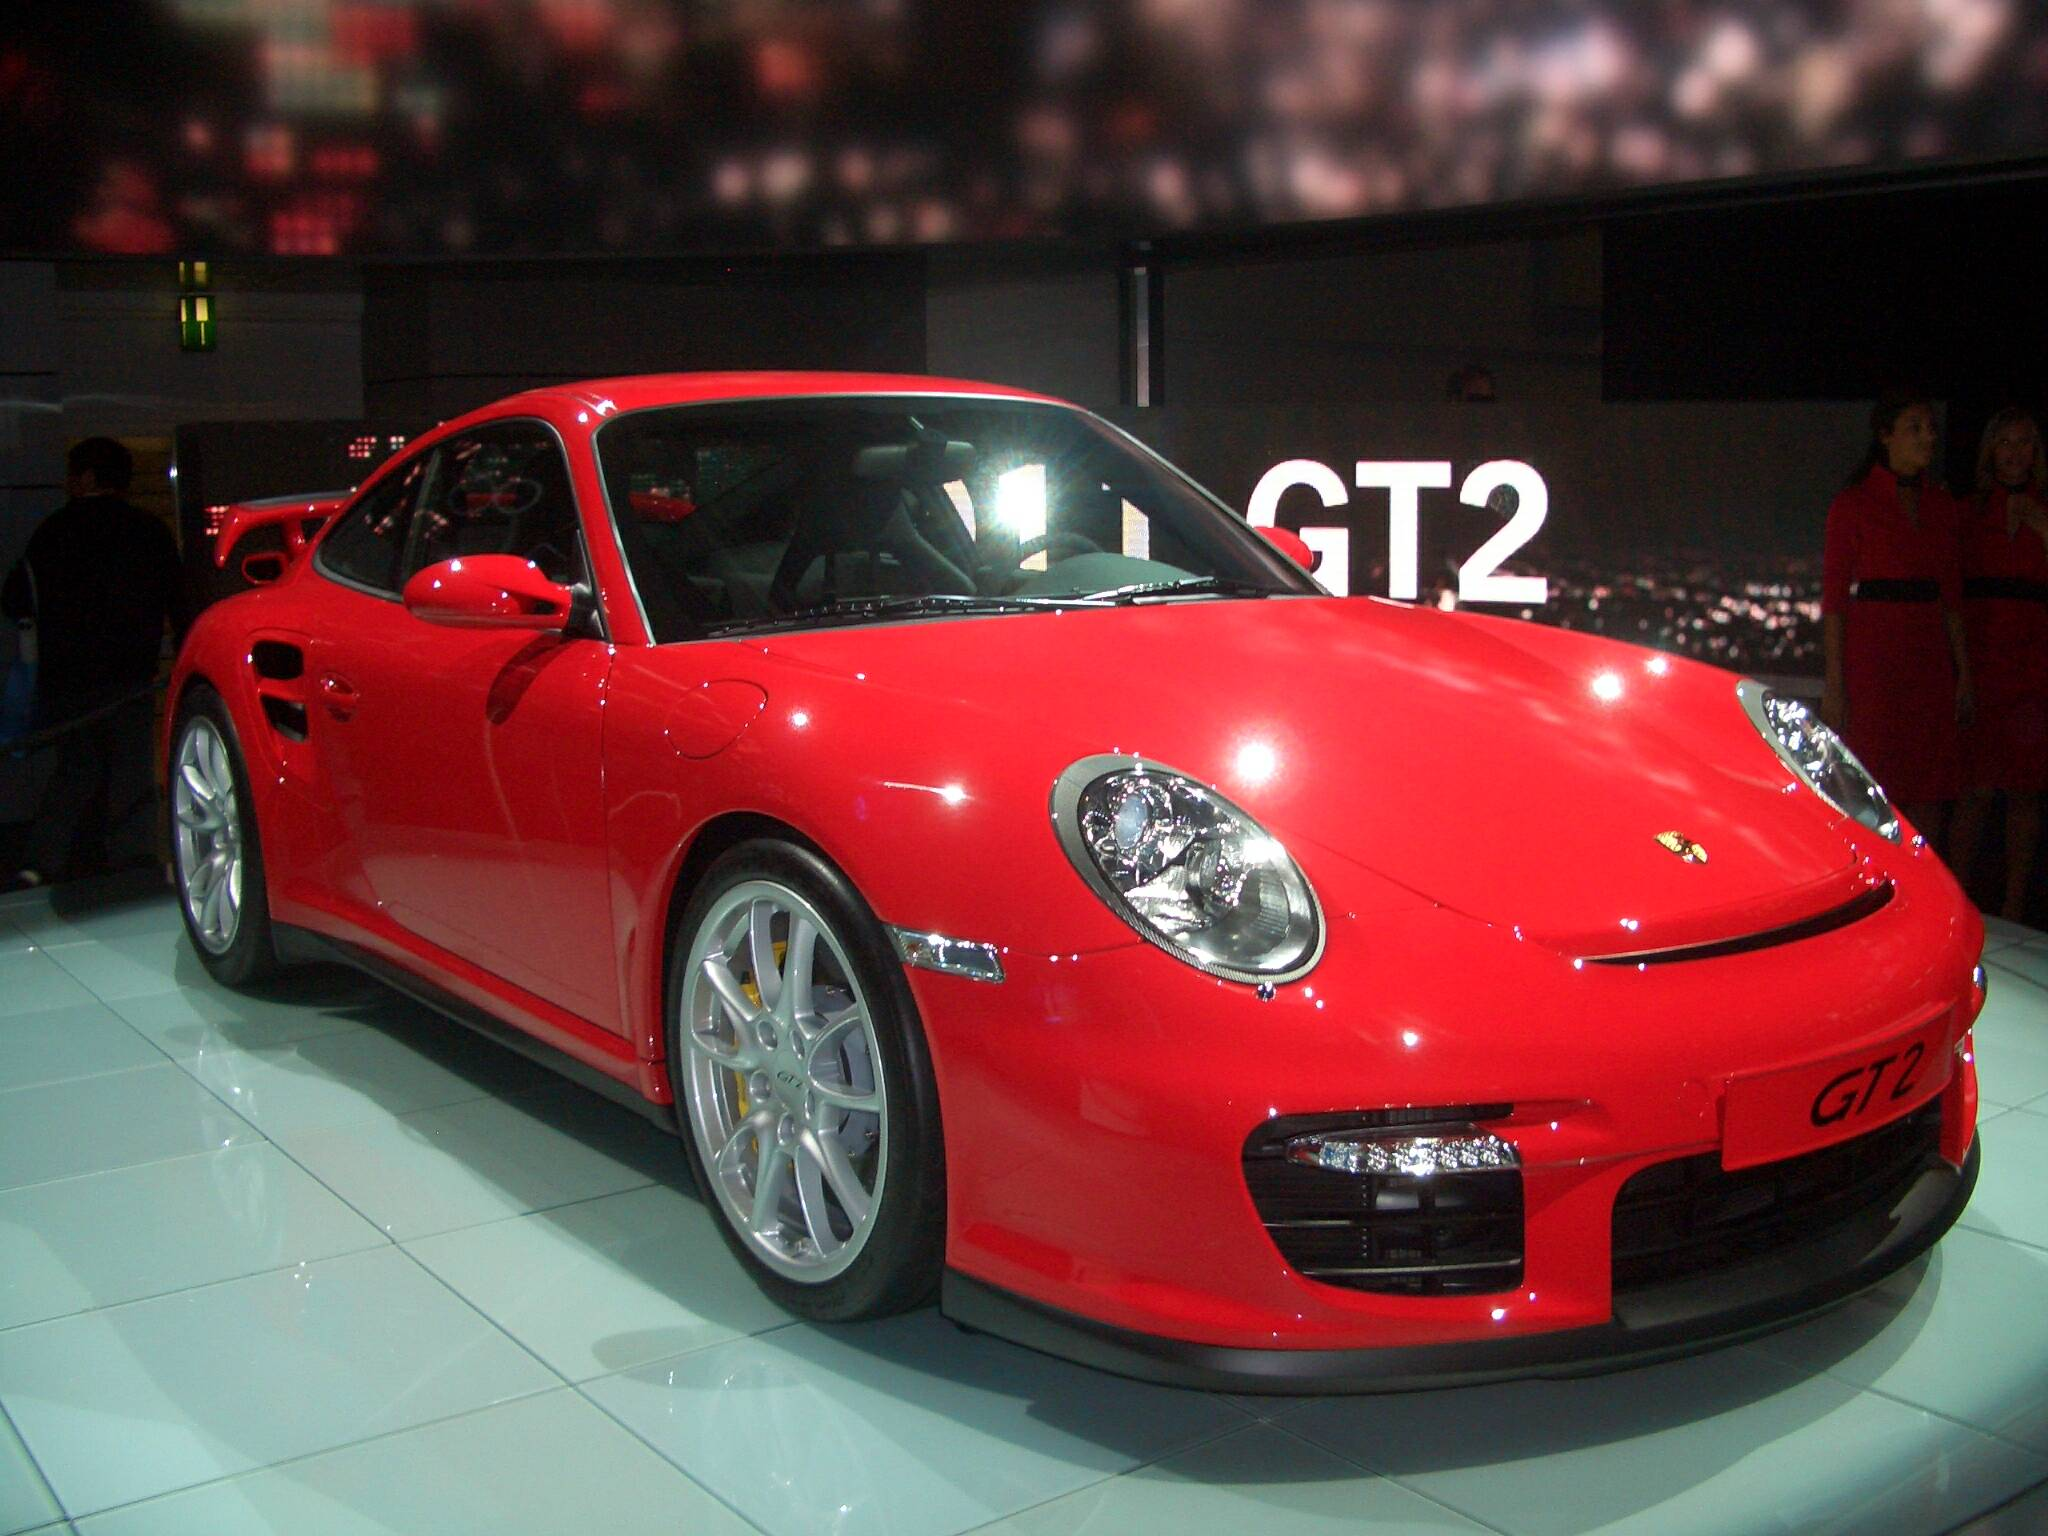 2007_Porsche_997_GT2_IAA_Frankfurt Interesting Porsche 911 Gt2 and Gt3 Cars Trend